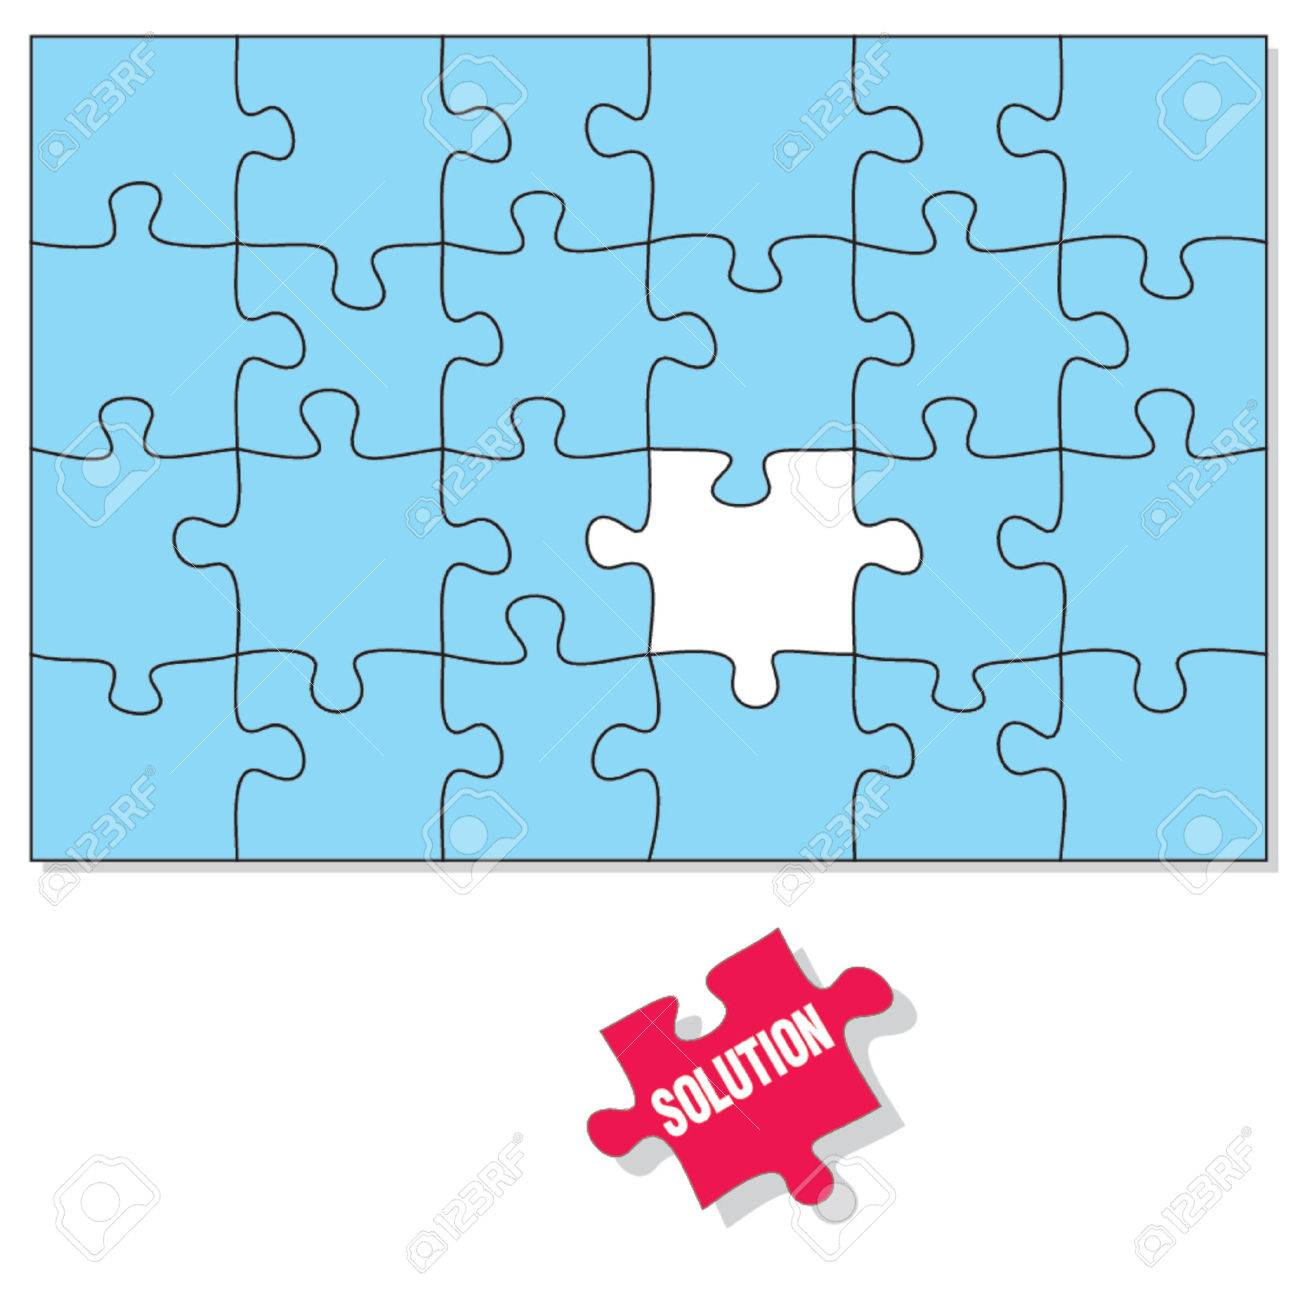 Puzzle Pieces The Solution Piece Is Missing Stock Vector